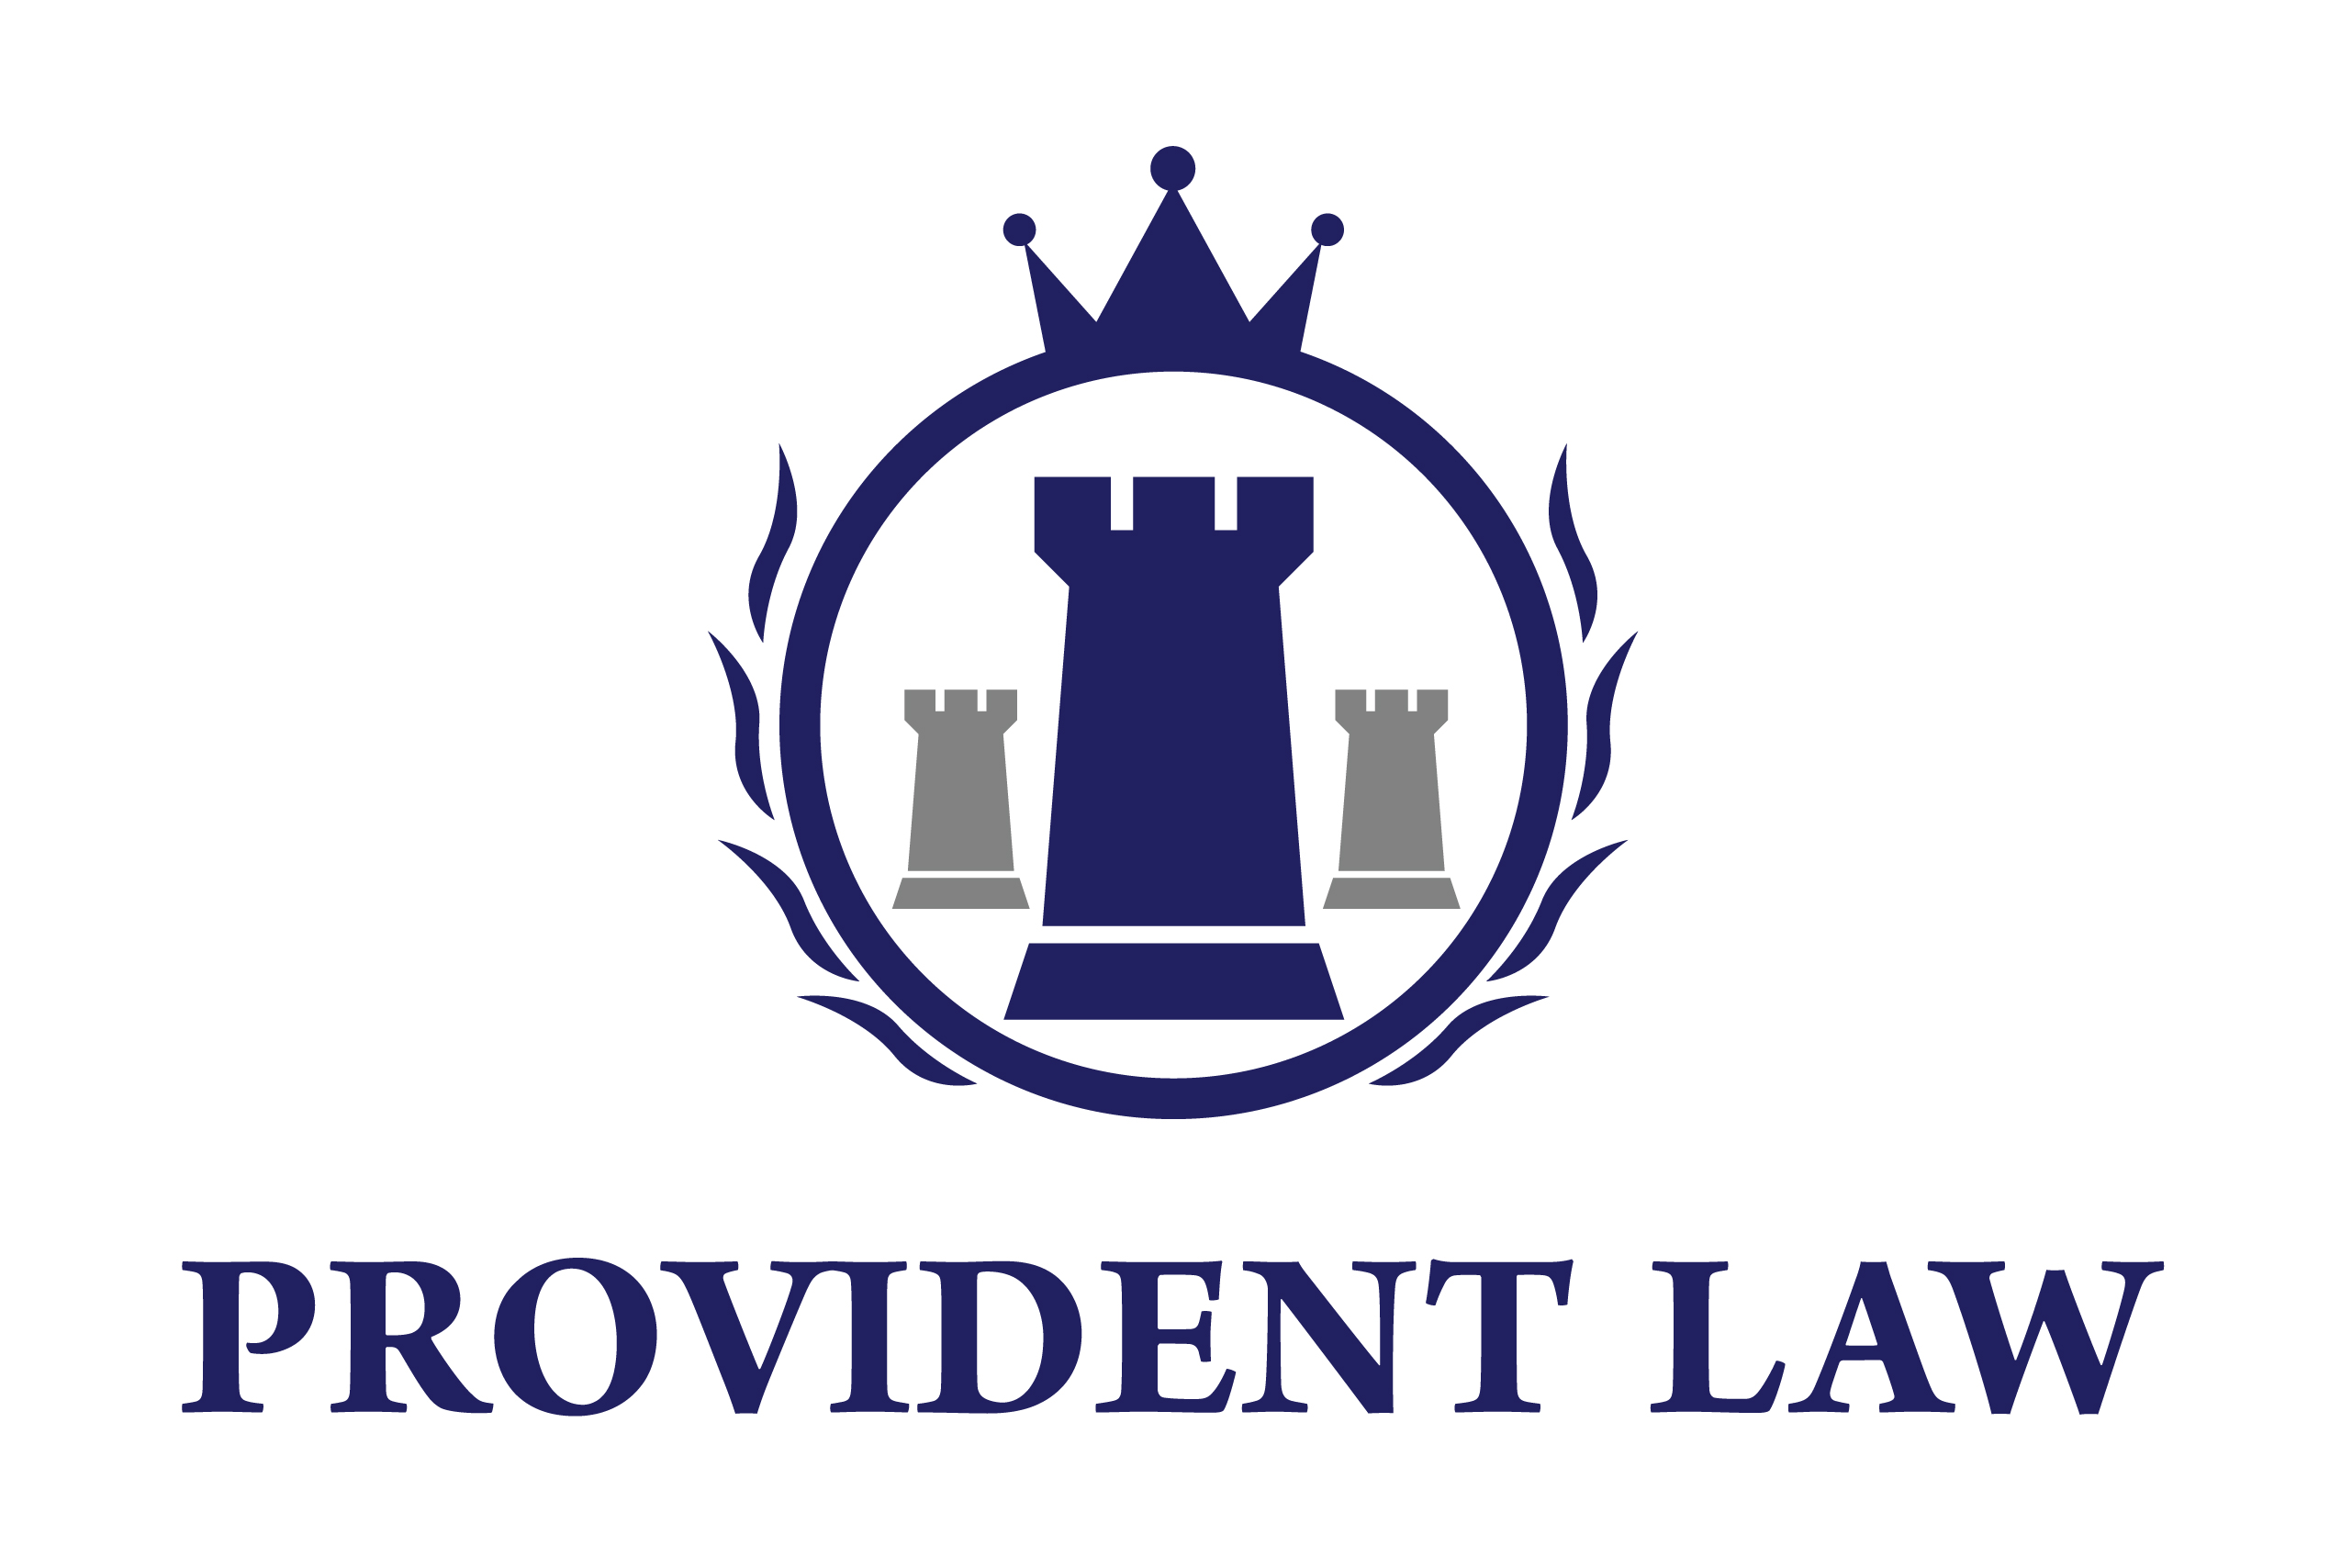 Provident Law